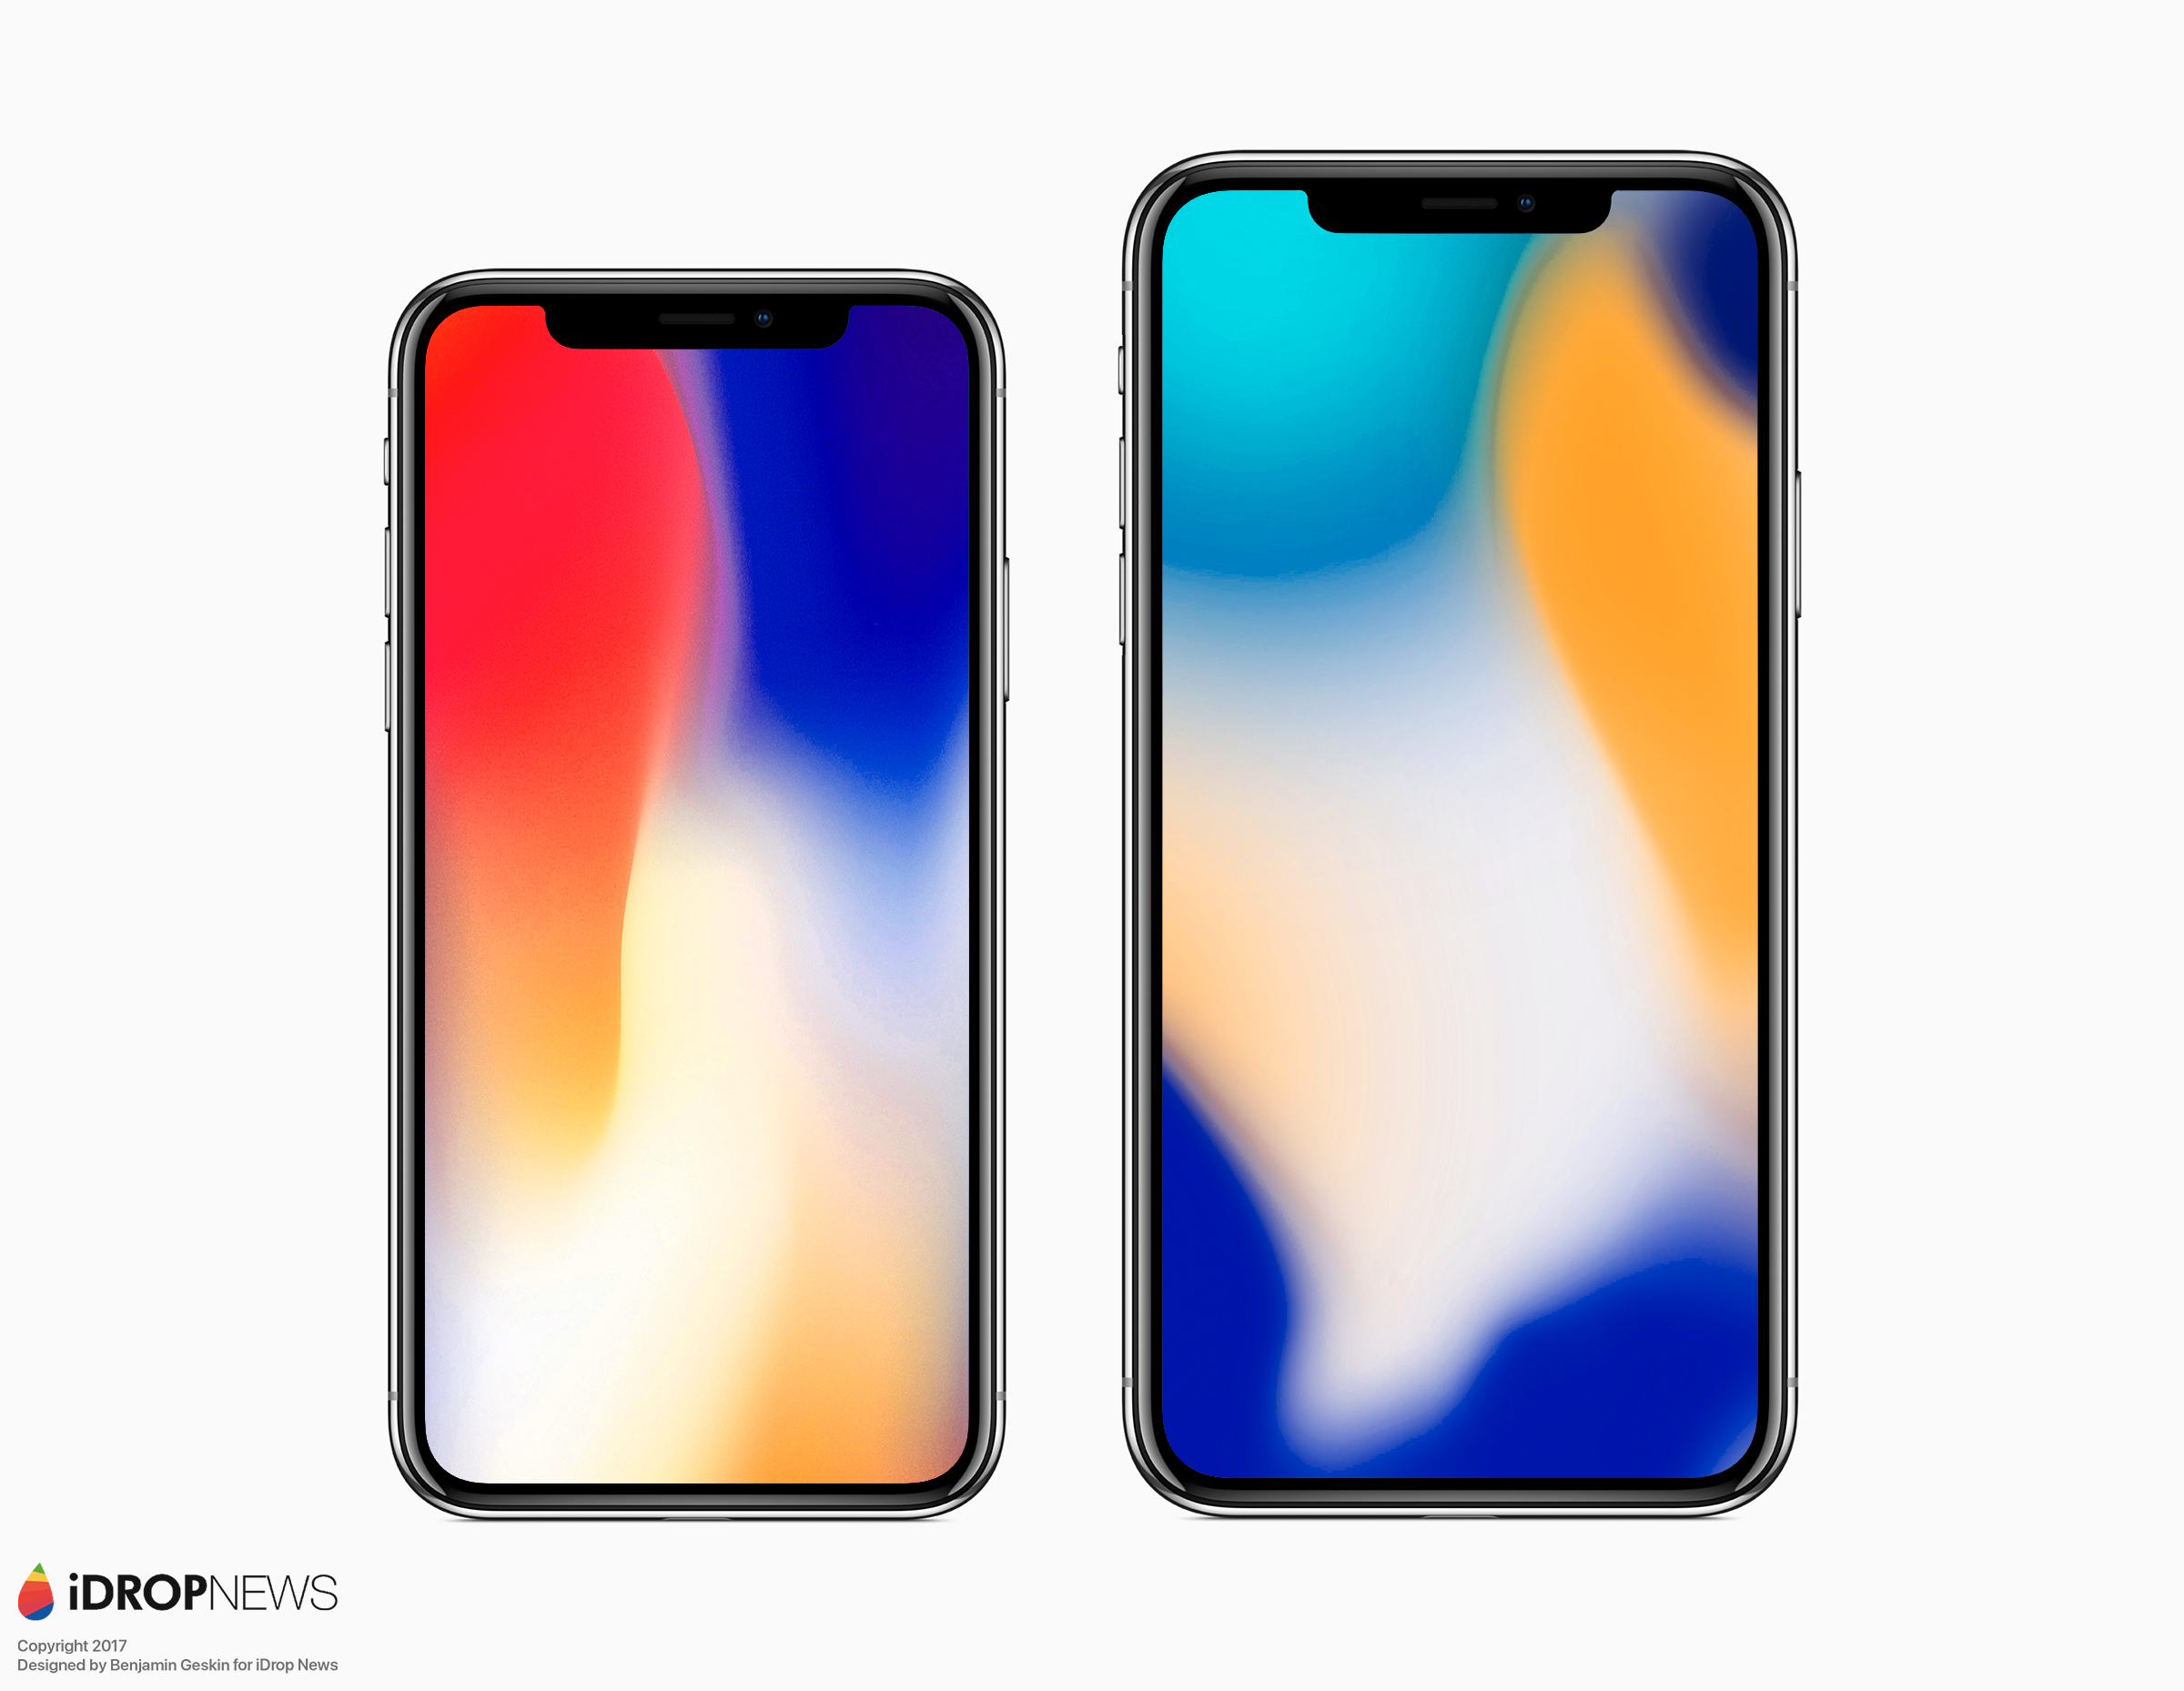 iPhone X Plus iDropNews 7